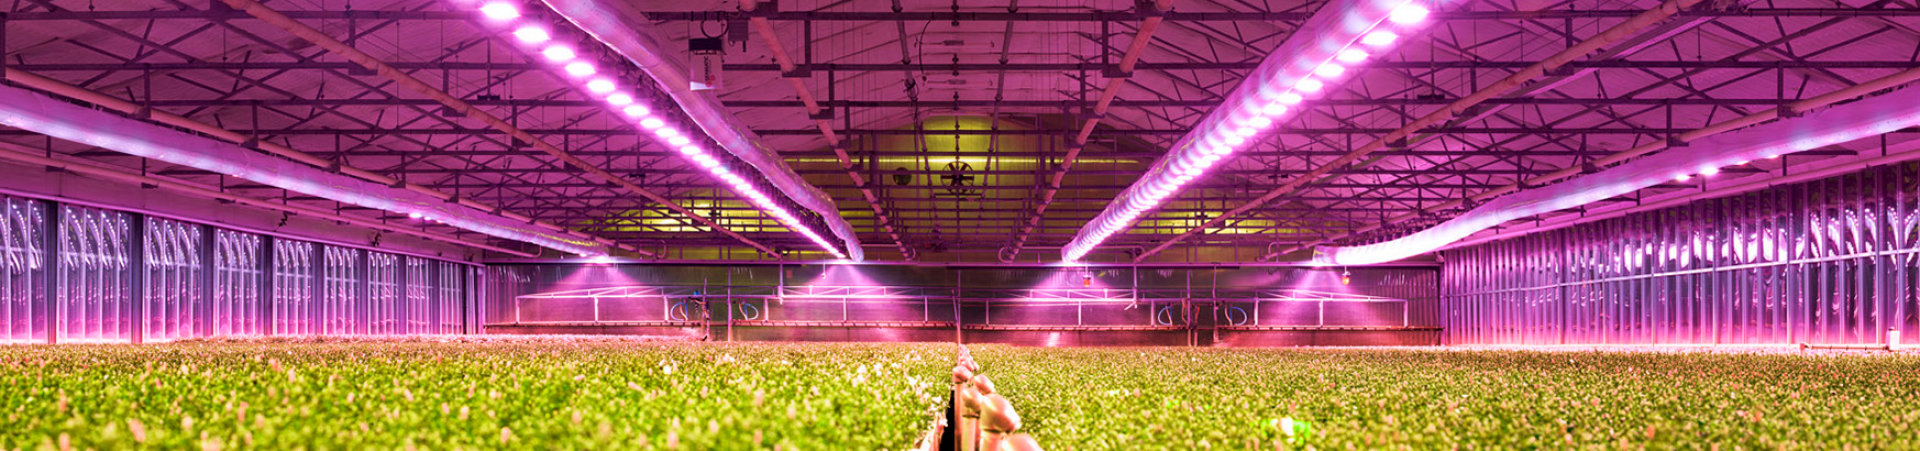 LED Solutions for Horticulture